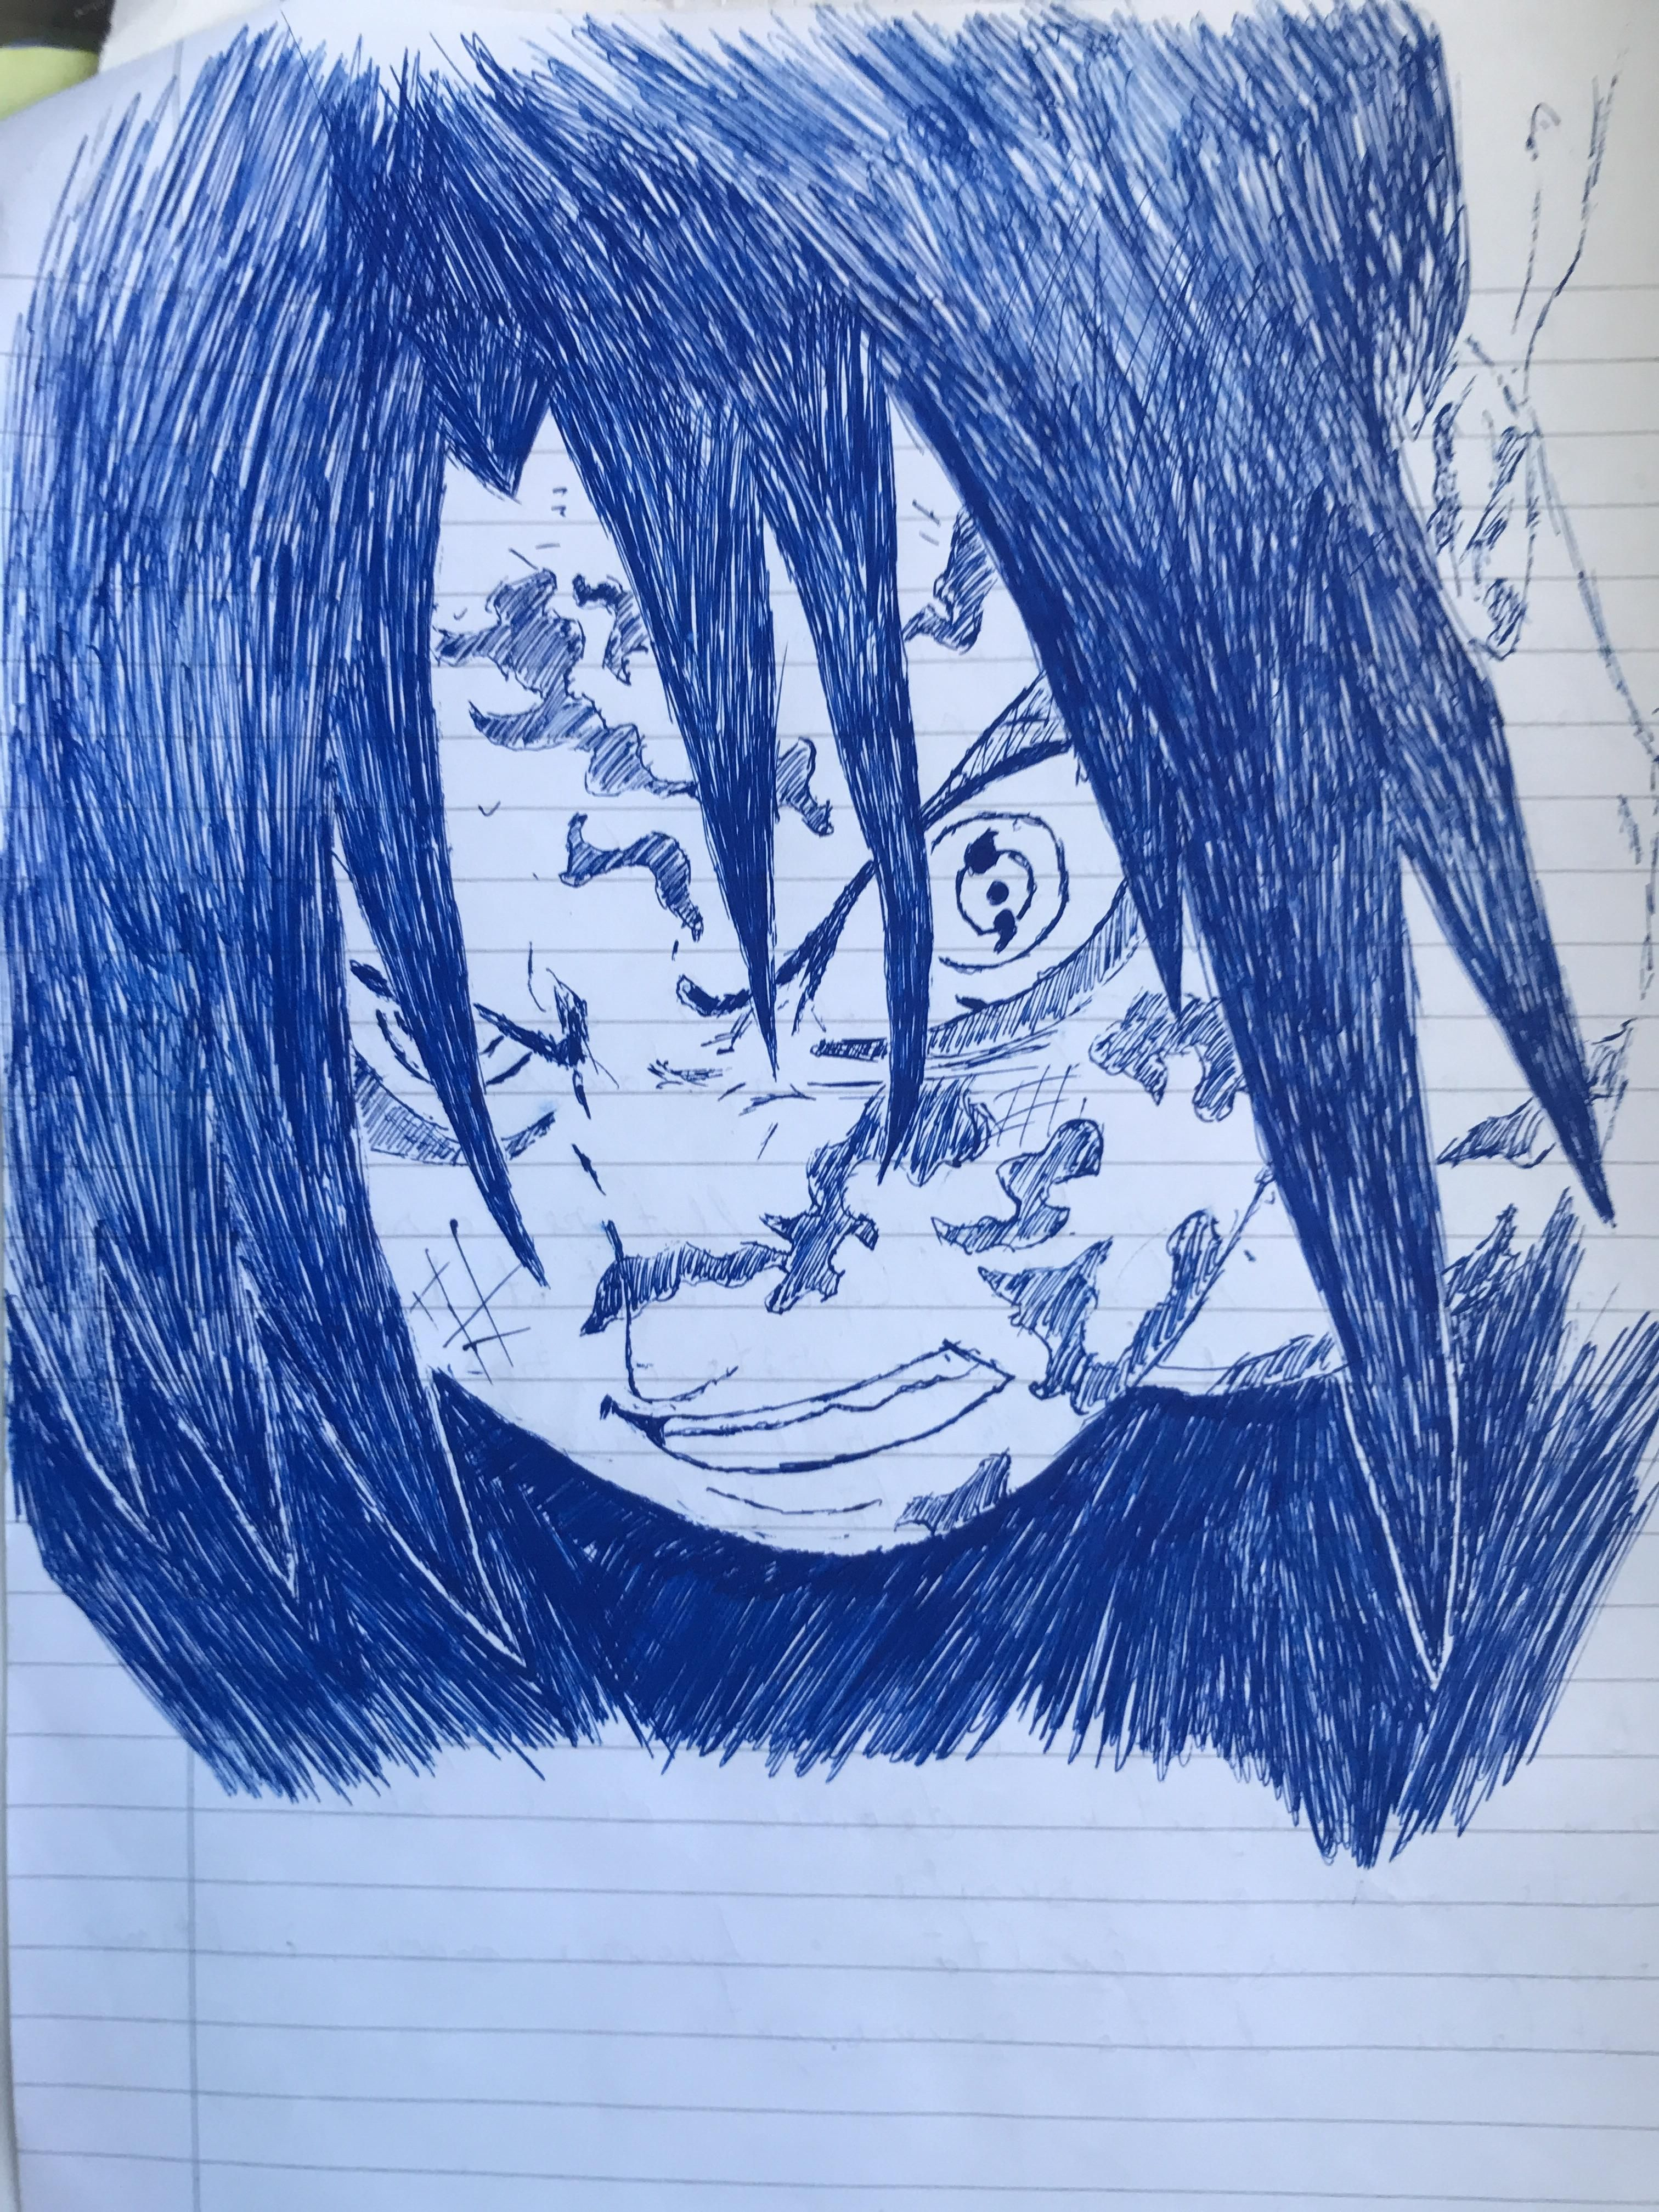 A Little Sketch I Made In Class A While Ago Thought You Guys Would Like It Naruto Anime Manga Desenhos Desenhos A Lápis